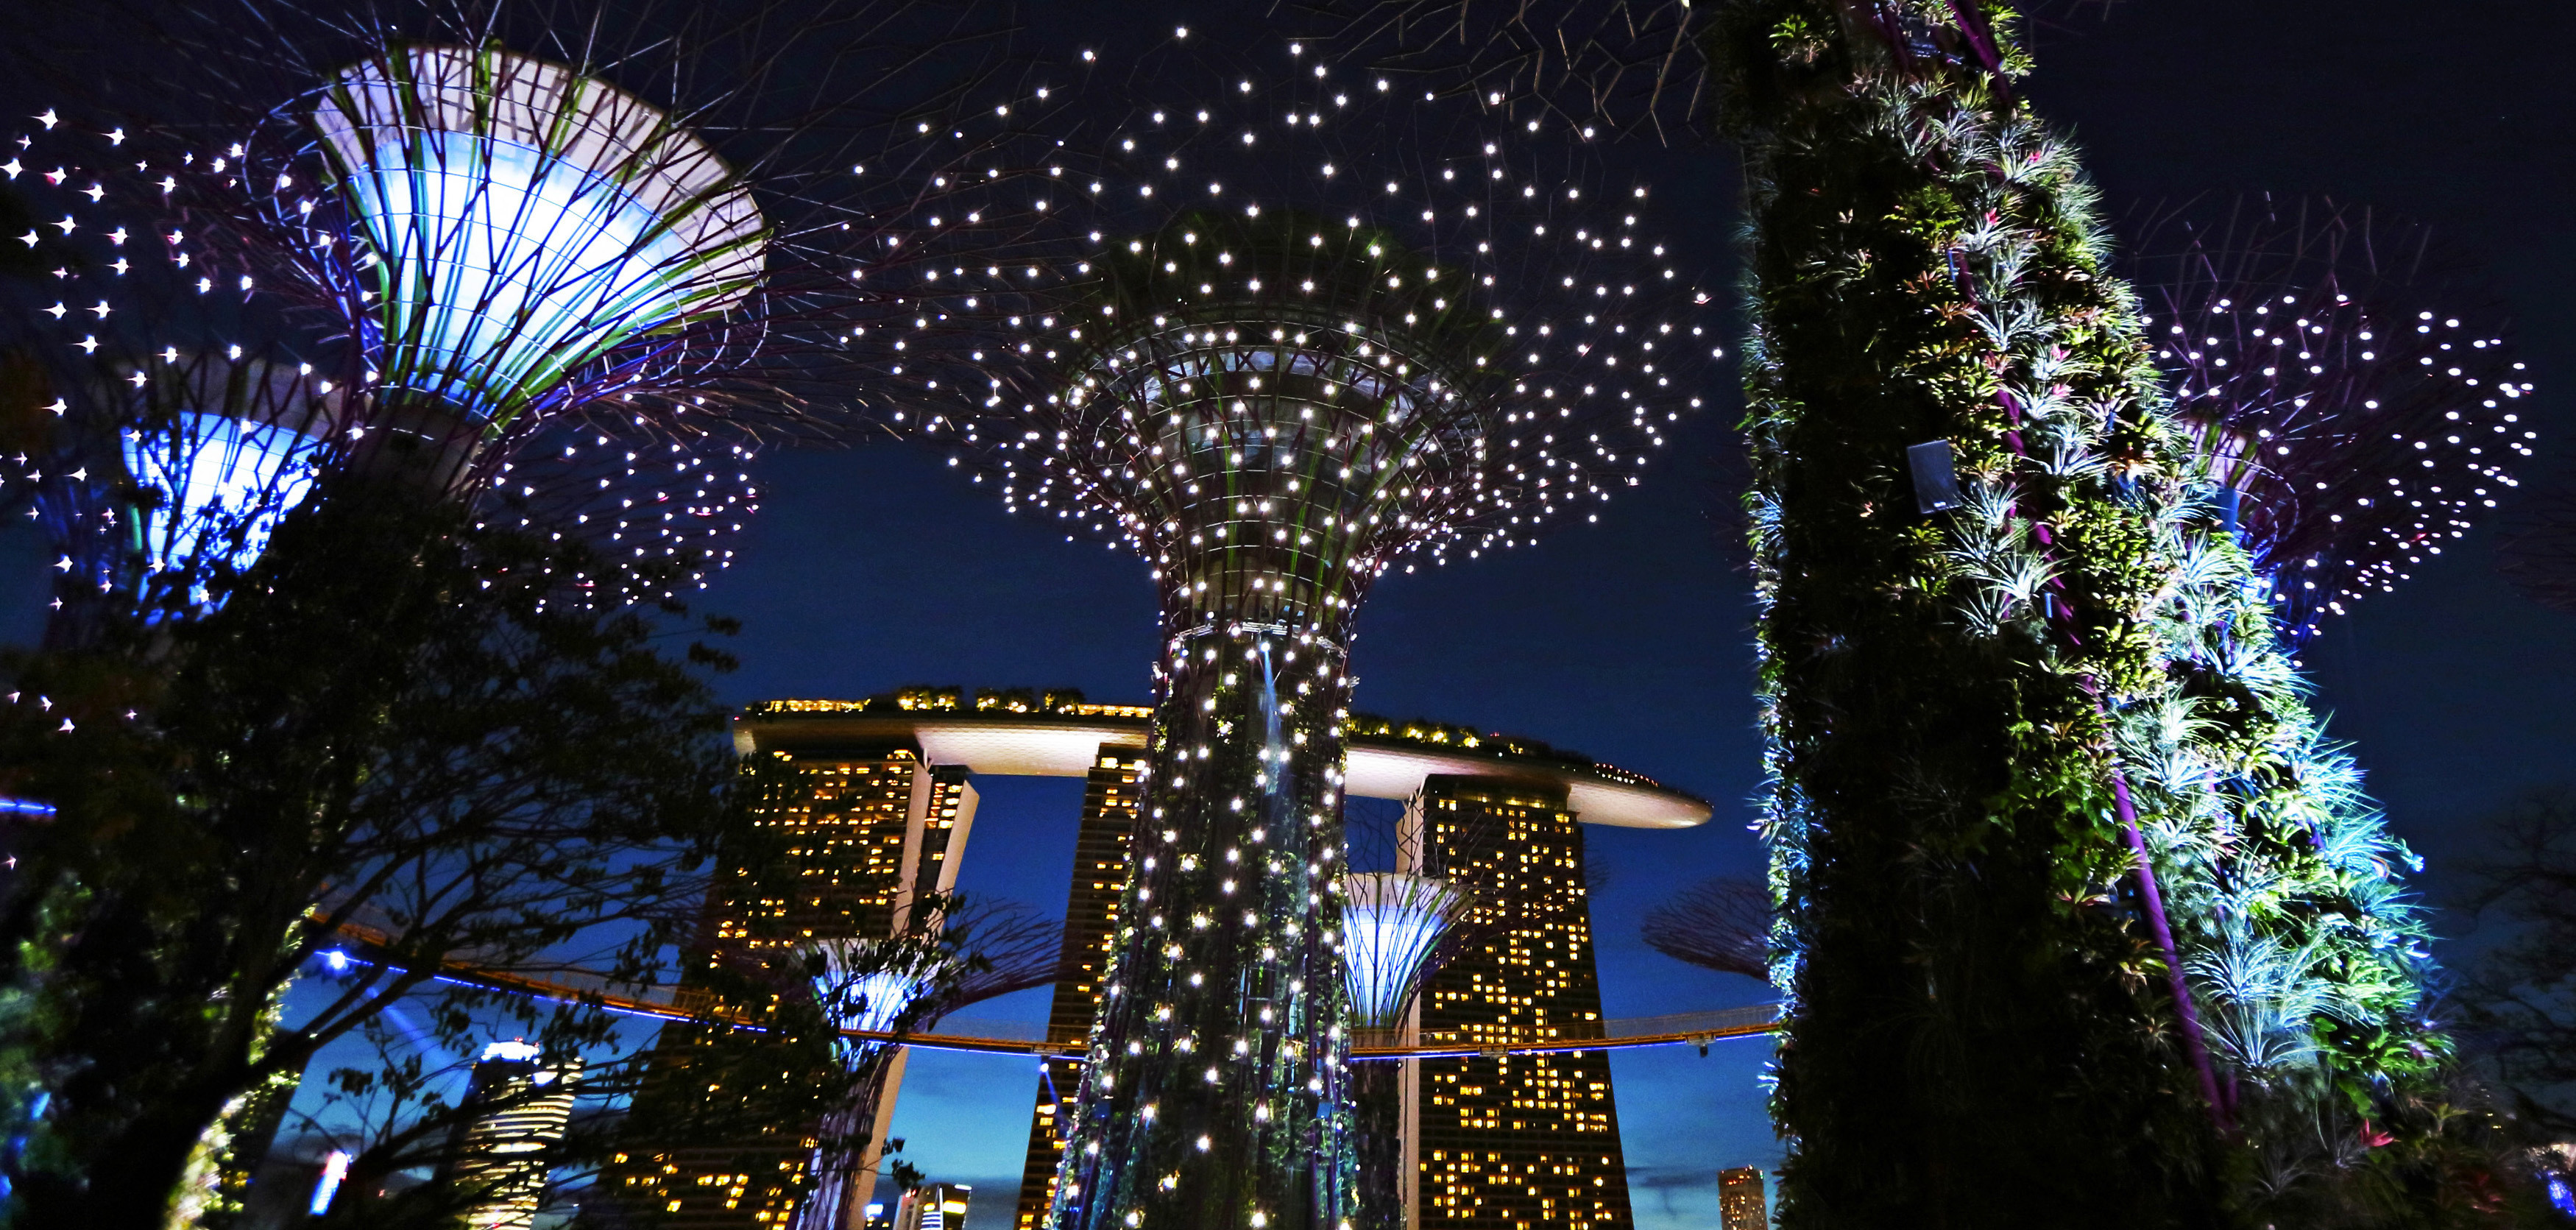 The giant concrete structures of the Supertree Grove are illuminated against the dusk sky at the newly opened Gardens by the Bay in Singapore July 8, 2012. The 101-hectare gardens, situated at the heart of Singapore's Marine Bay, cost S$1 billion ($786 million) to build and houses over a quarter of a million rare plants, according to the park. REUTERS/Tim Chong (SINGAPORE - Tags: ENVIRONMENT CITYSPACE SOCIETY) - GM1E8781R2M01